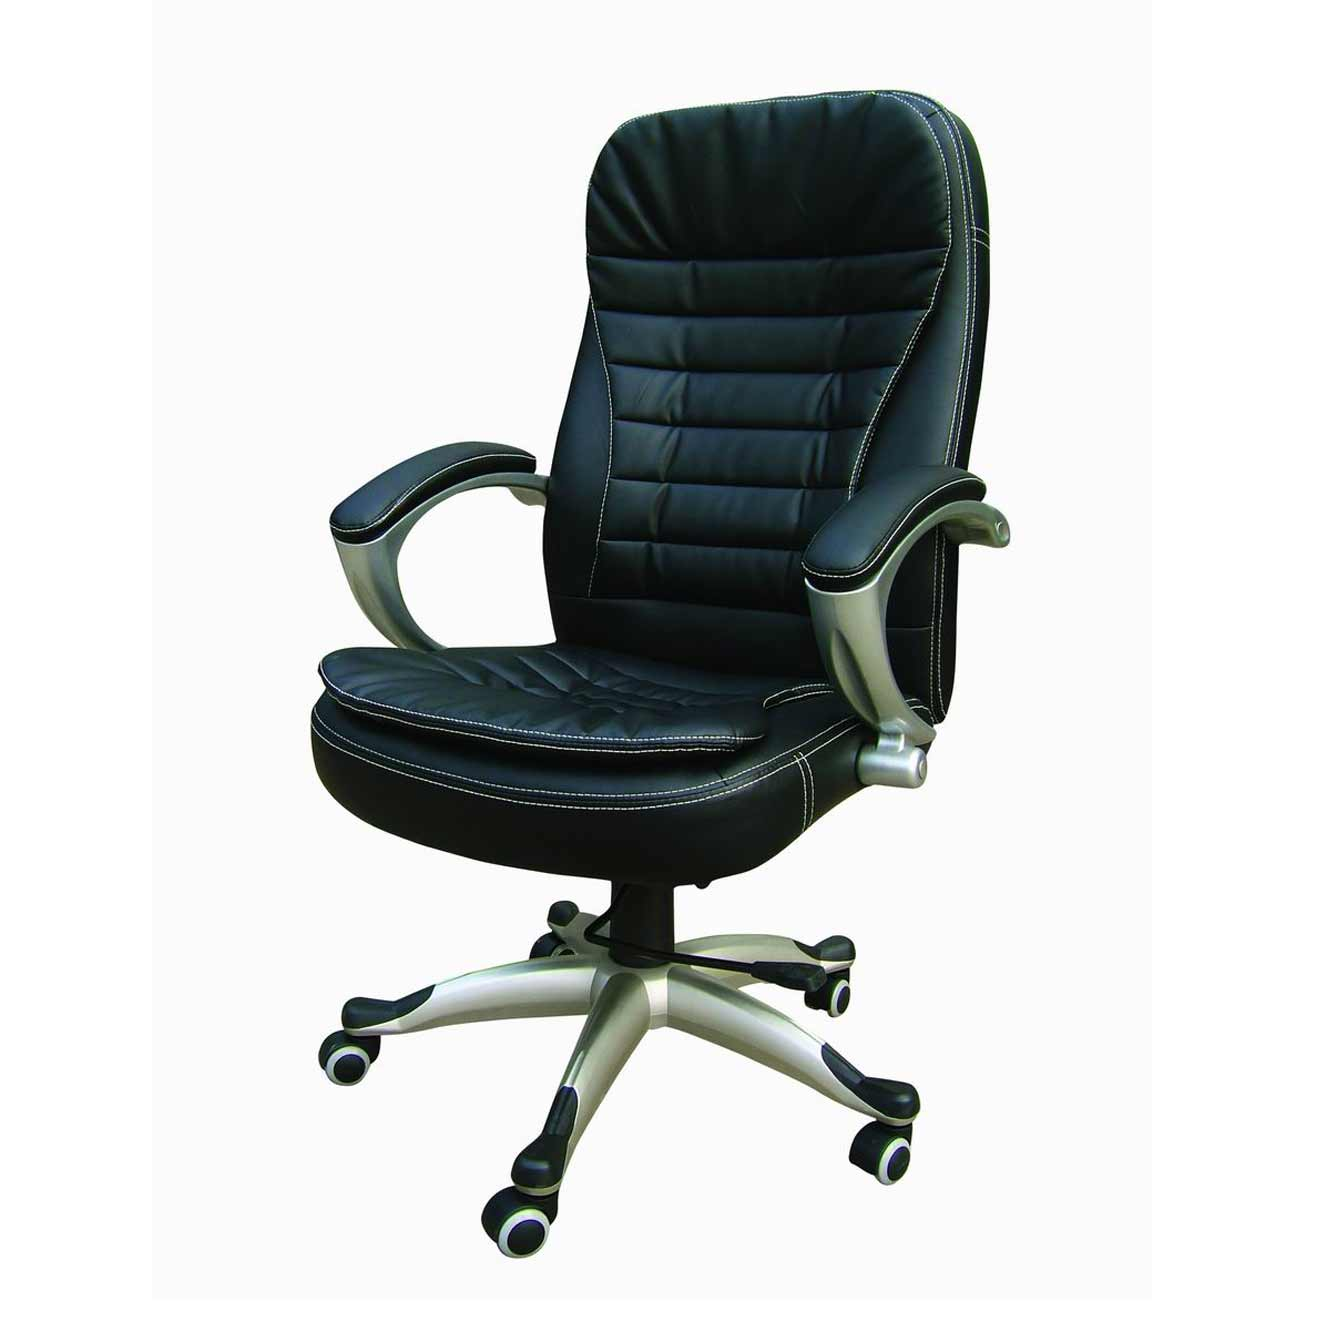 Ergonomic Office Chairs Large Office Chair For Executive